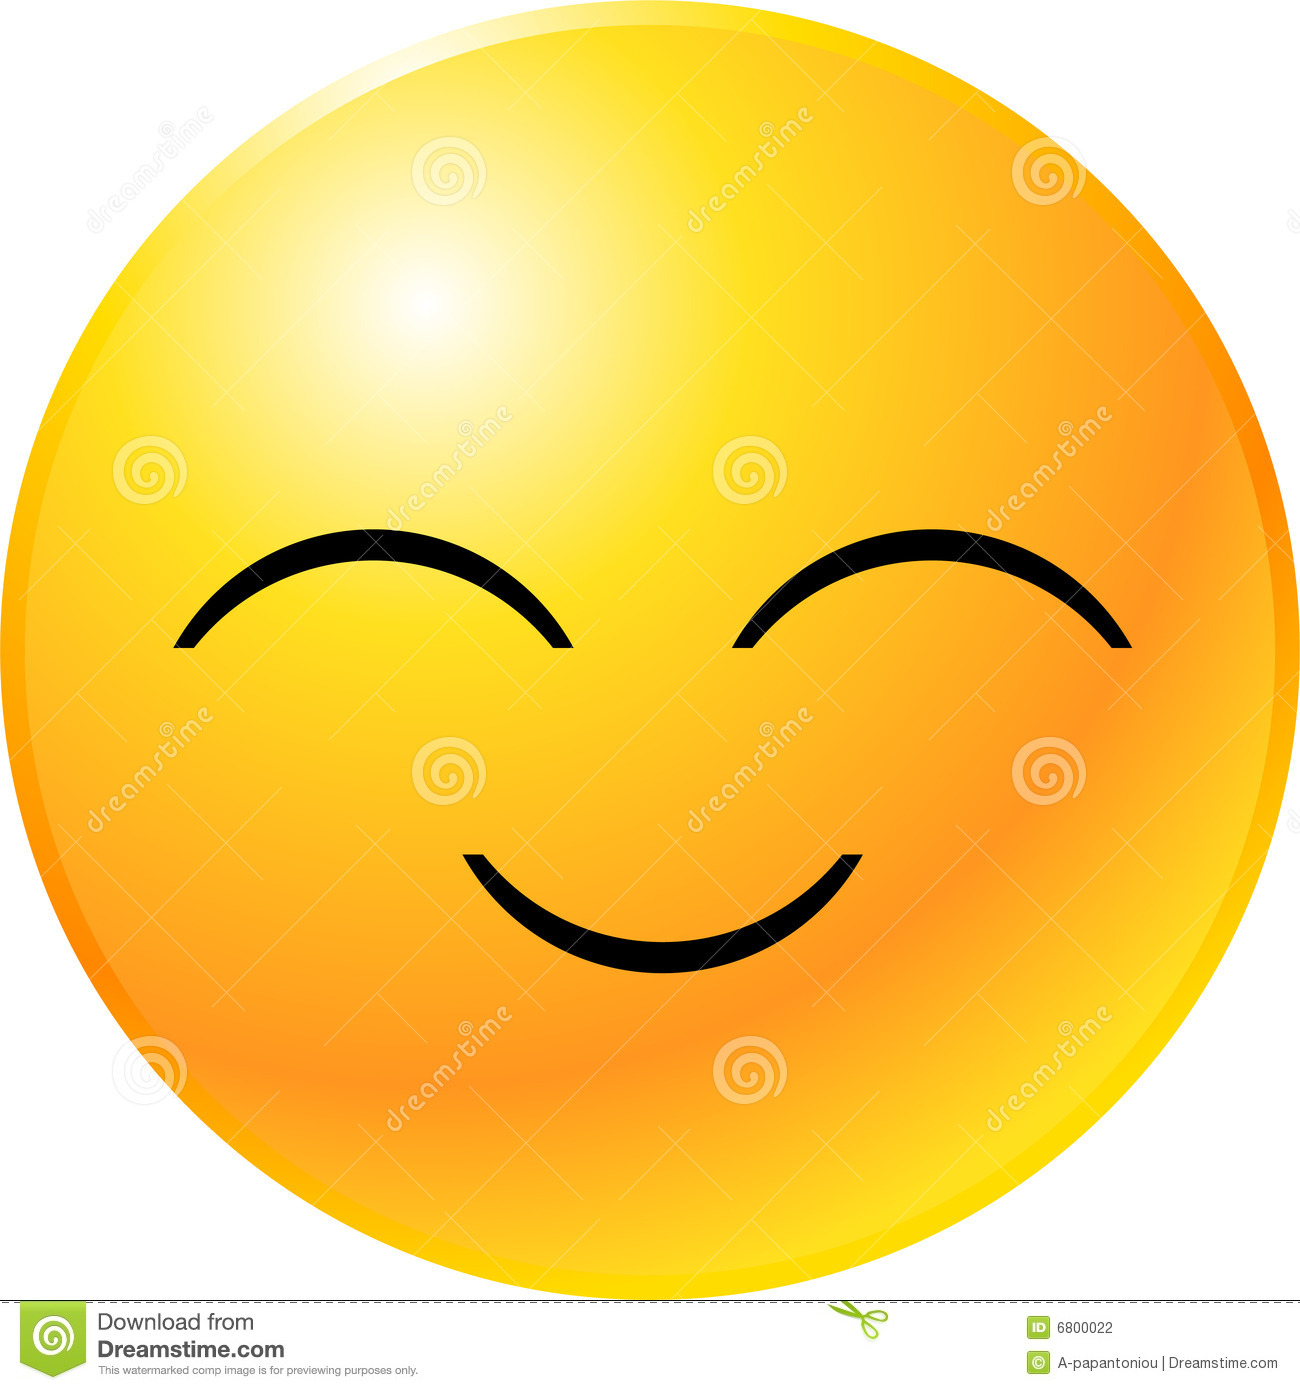 Smiley face clip art. Emotions clipart main